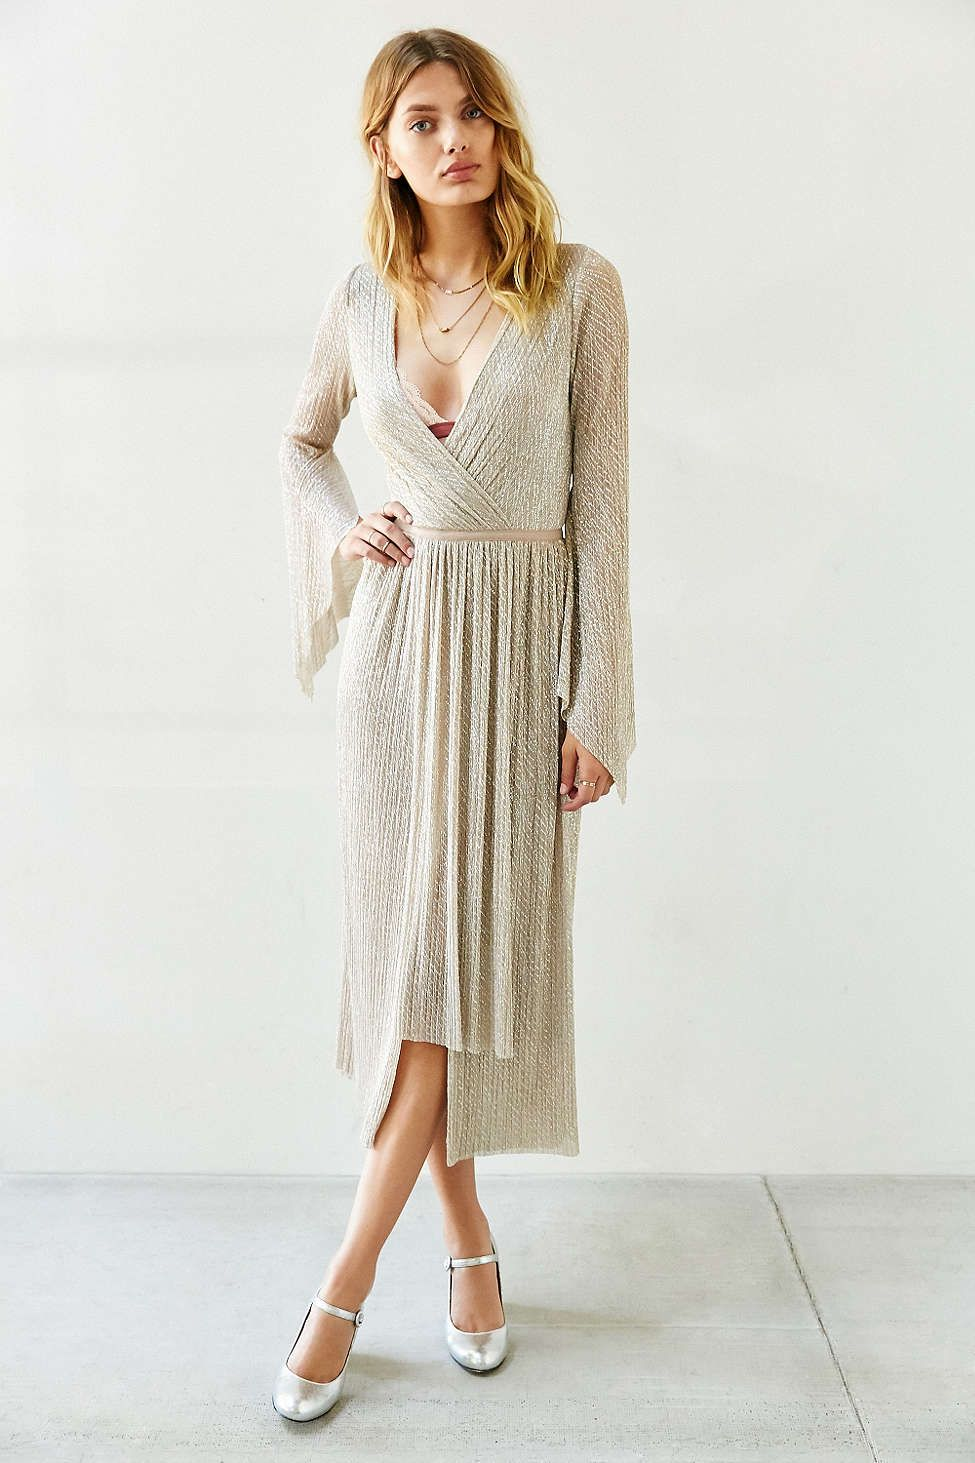 Bec u bridge gold dust maxi dress urban outfitters dresses